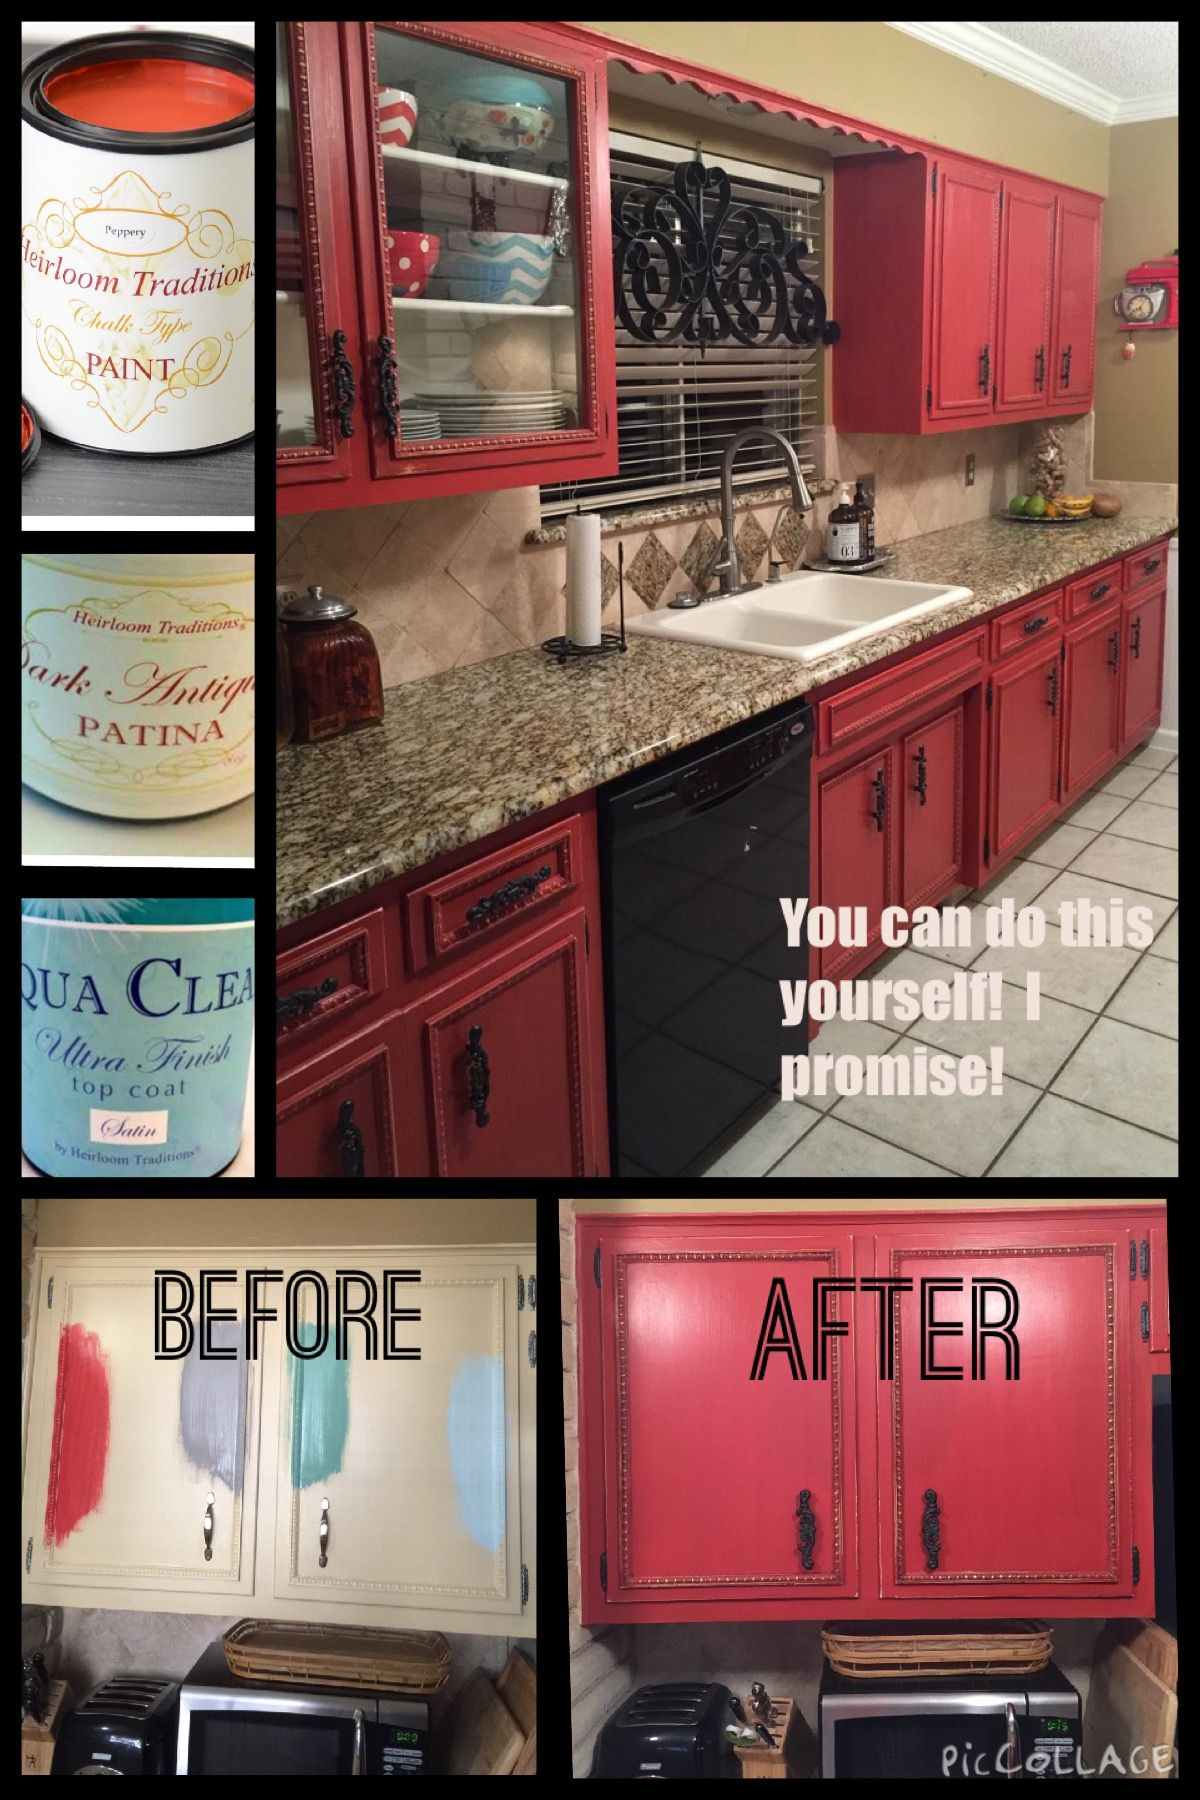 DIY Painted Red Cabinets in the Kitchen | Diy cabinets, Red paint ...